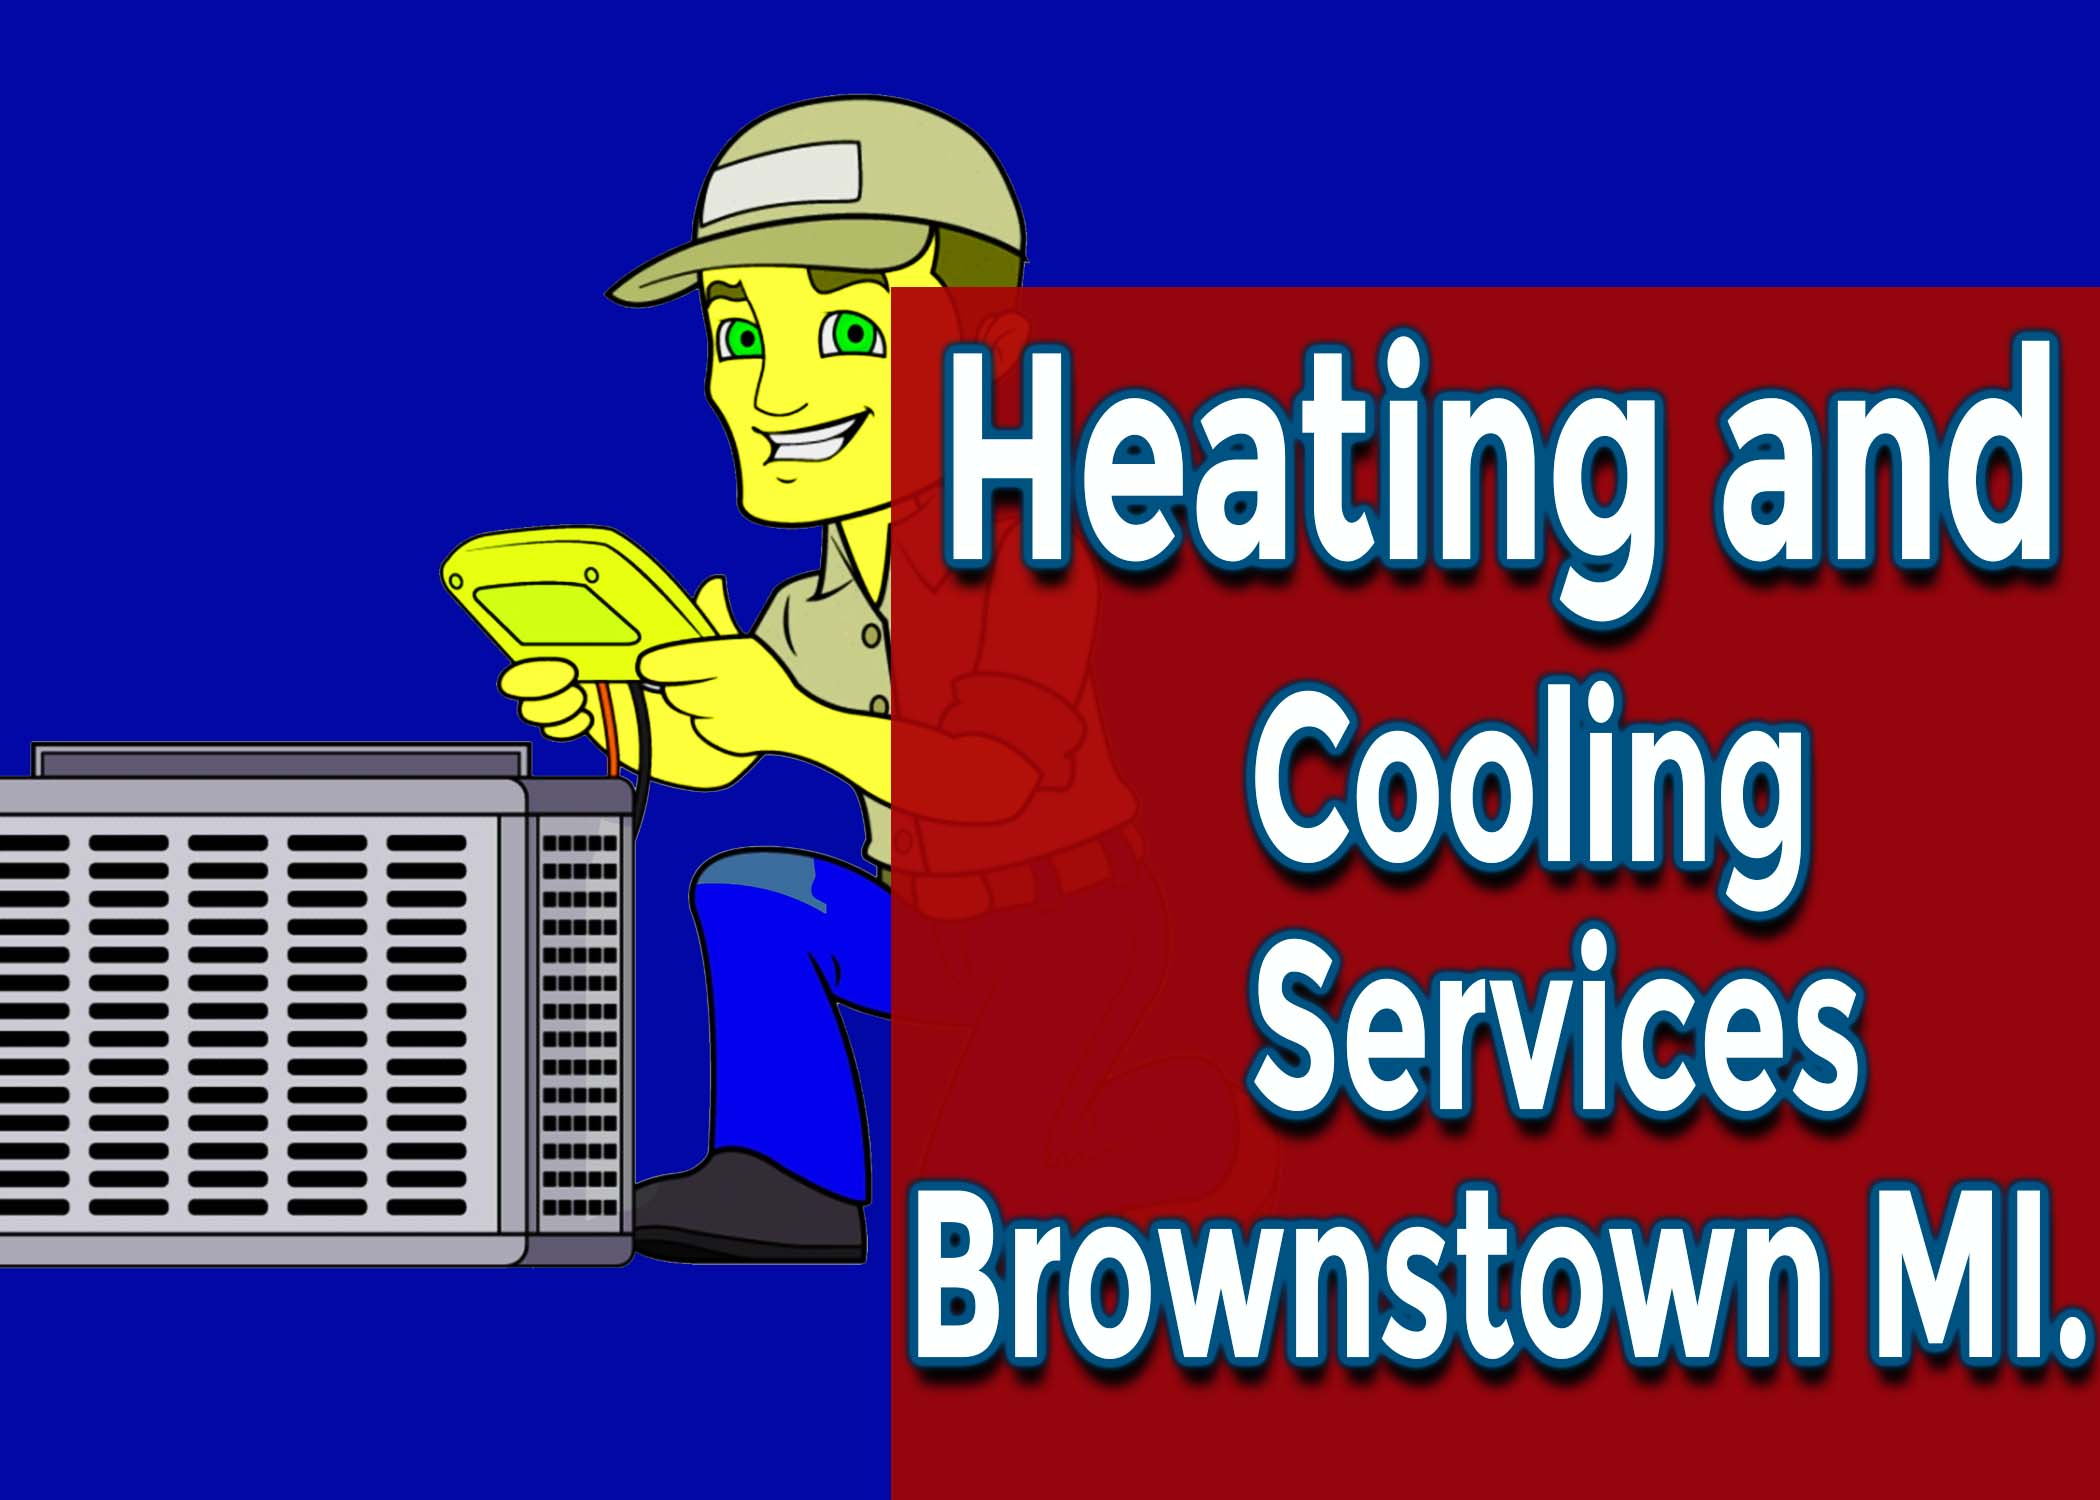 How To Reduce Operational Costs On Heating and Cooling Services Brownstown Michigan